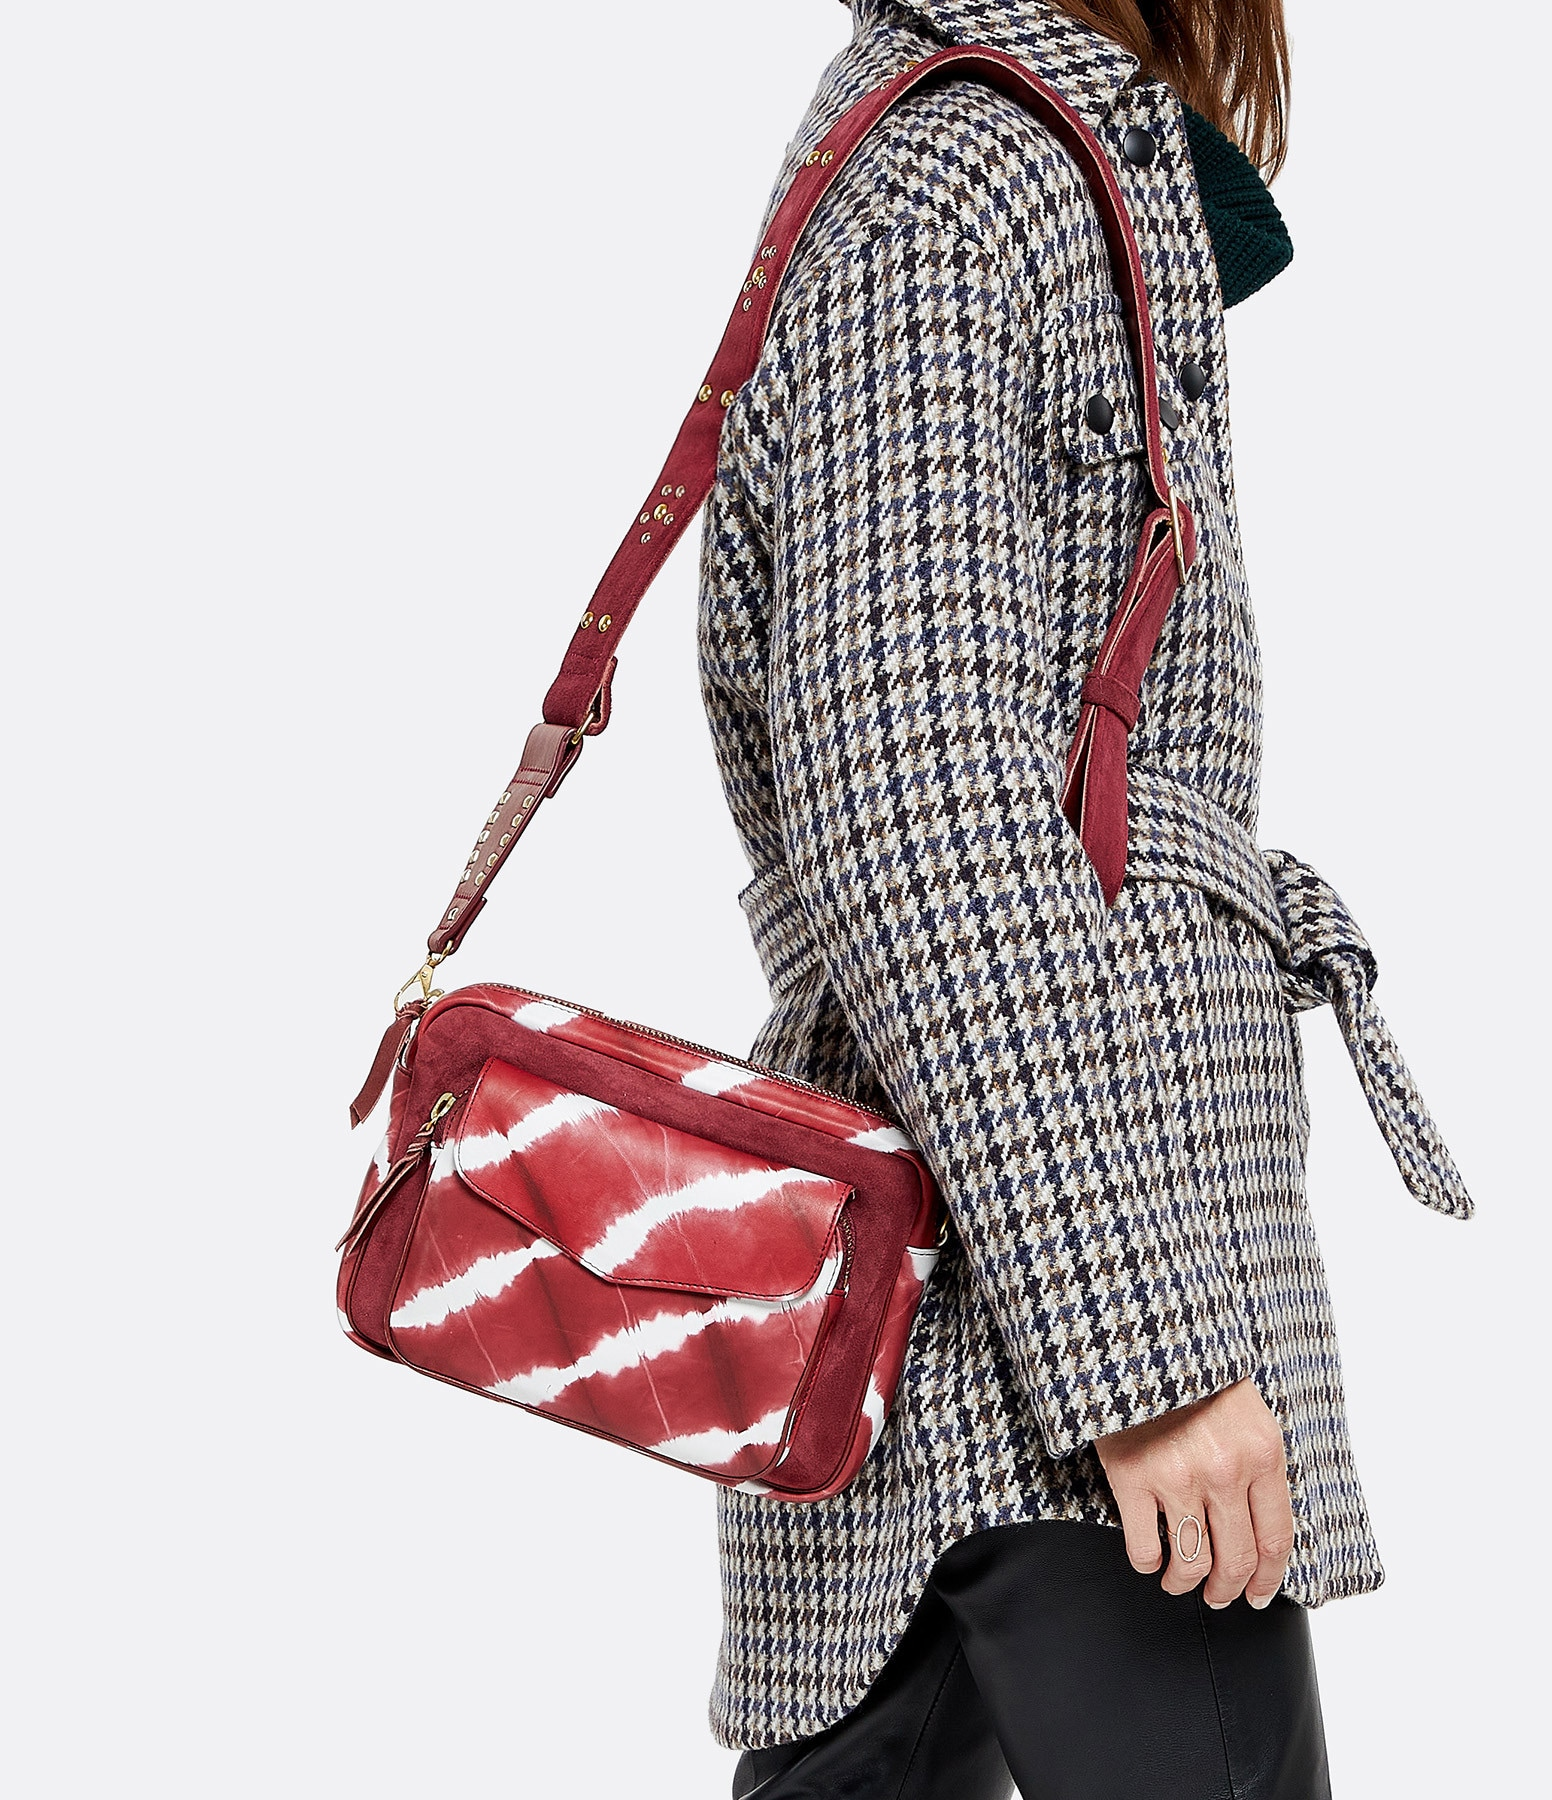 CLARIS VIROT - Sac Big Charly Cuir d'Agneau Tie & Dye Bordeaux